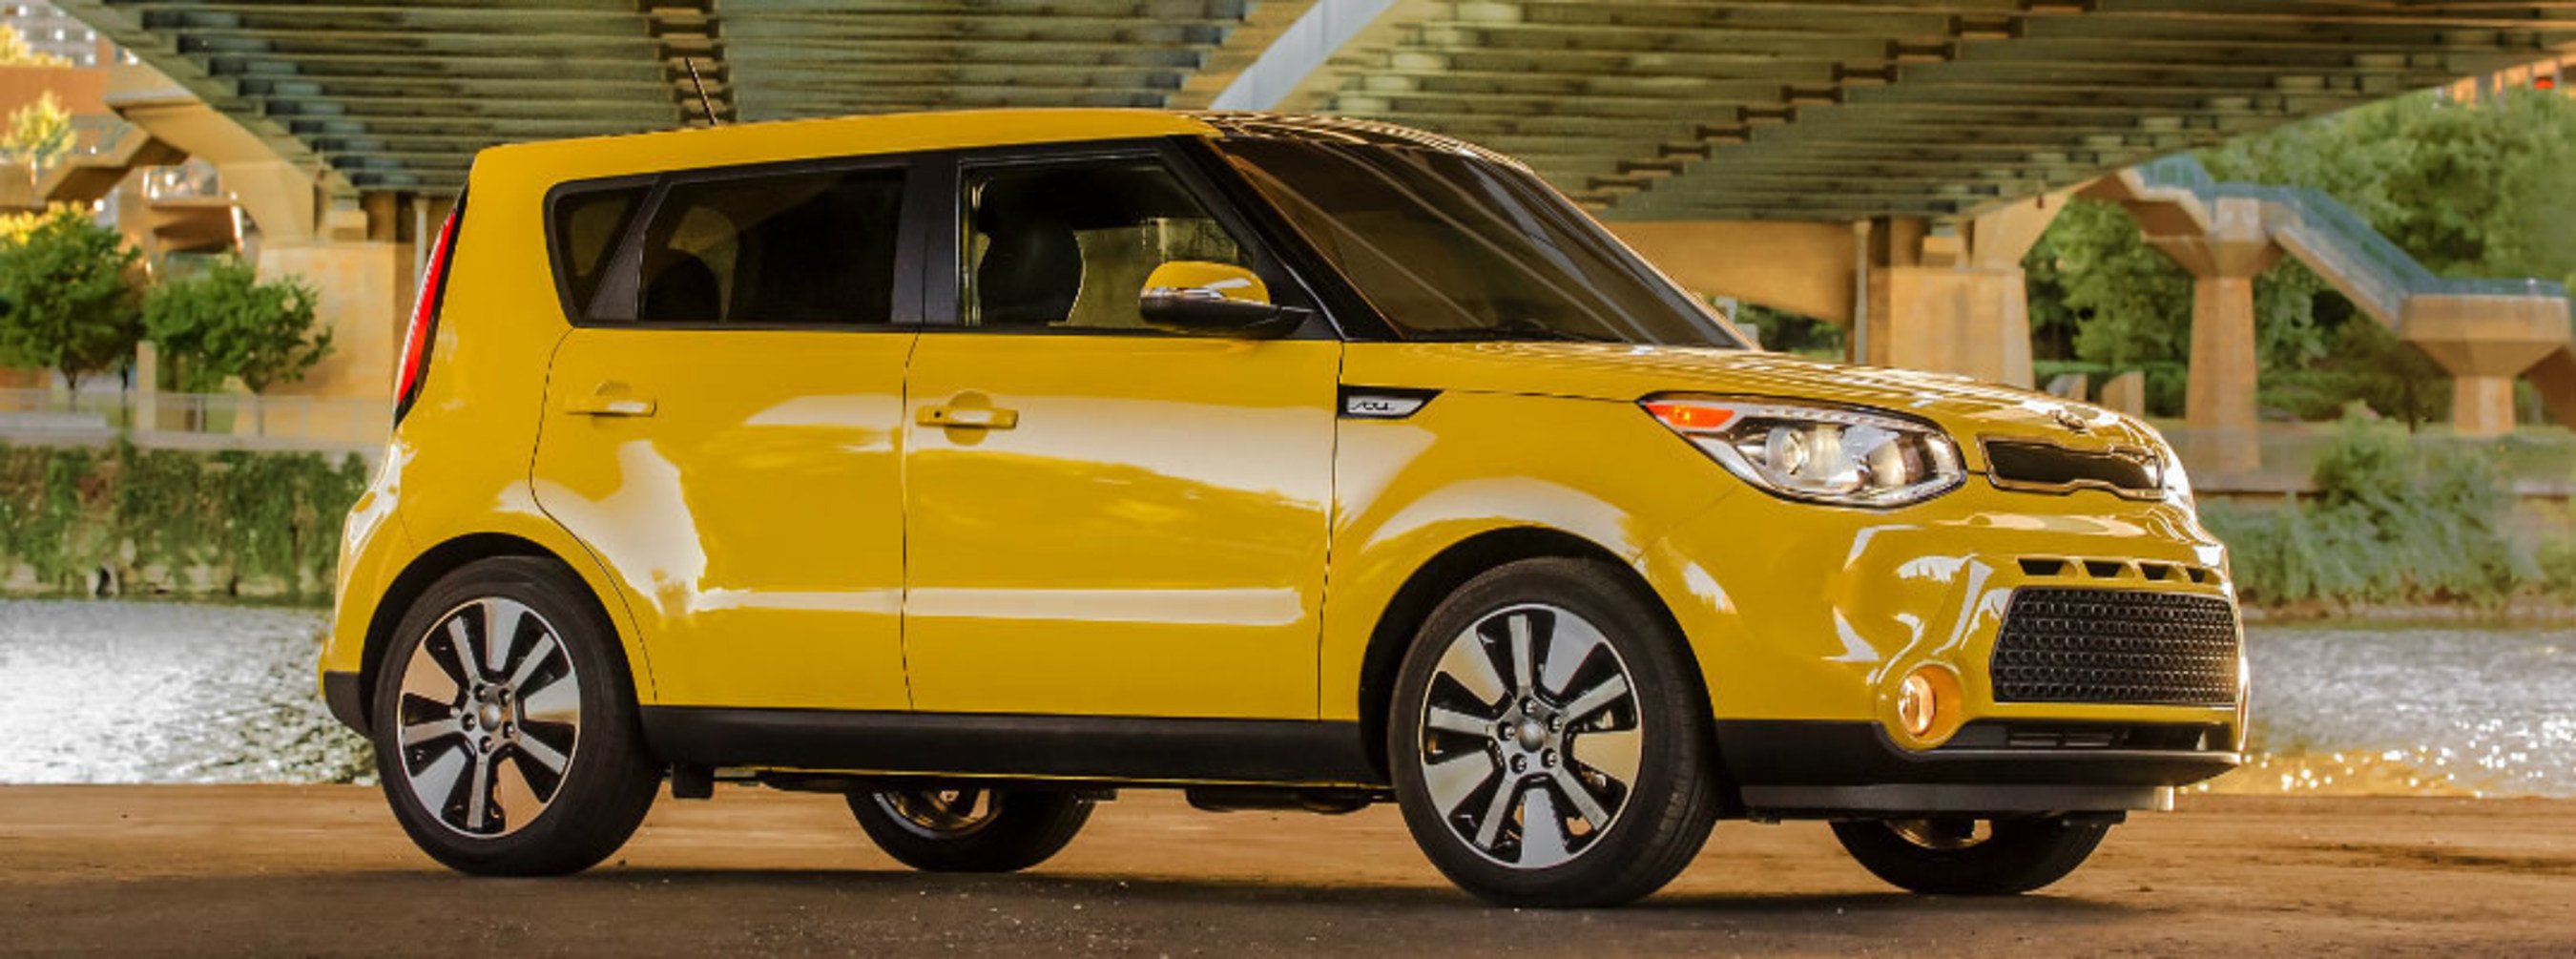 Drivers can now purchase a 2016 Kia Soul at Fred Anderson Kia